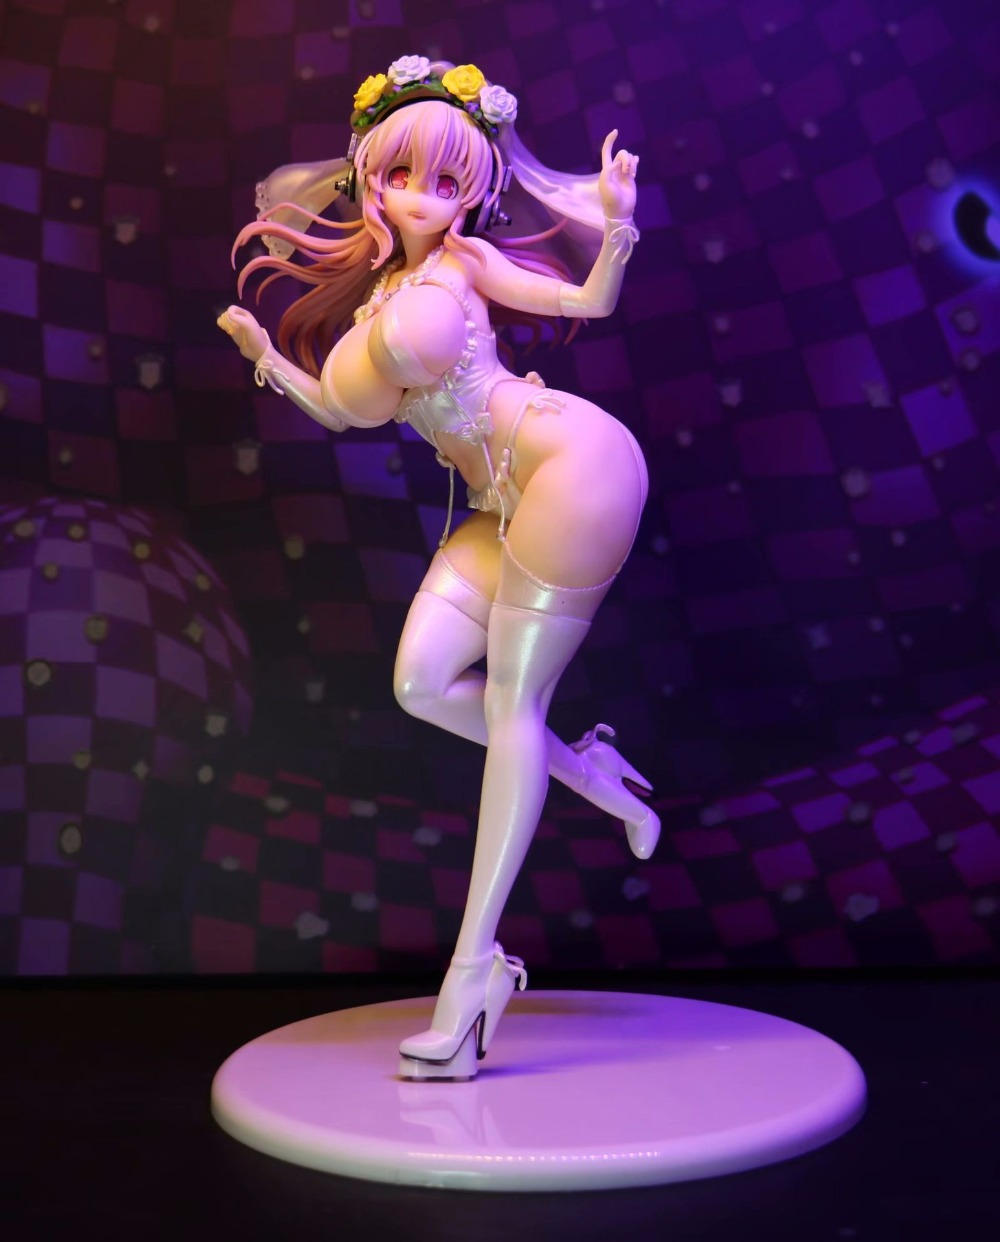 24cm <font><b>Japon</b></font> <font><b>Sexy</b></font> Girl <font><b>Anime</b></font> Super Sonico 10th Anniversary Wedding Bikini Ver. PVC <font><b>Action</b></font> <font><b>Figure</b></font> Collectible Model Toys For Gift image